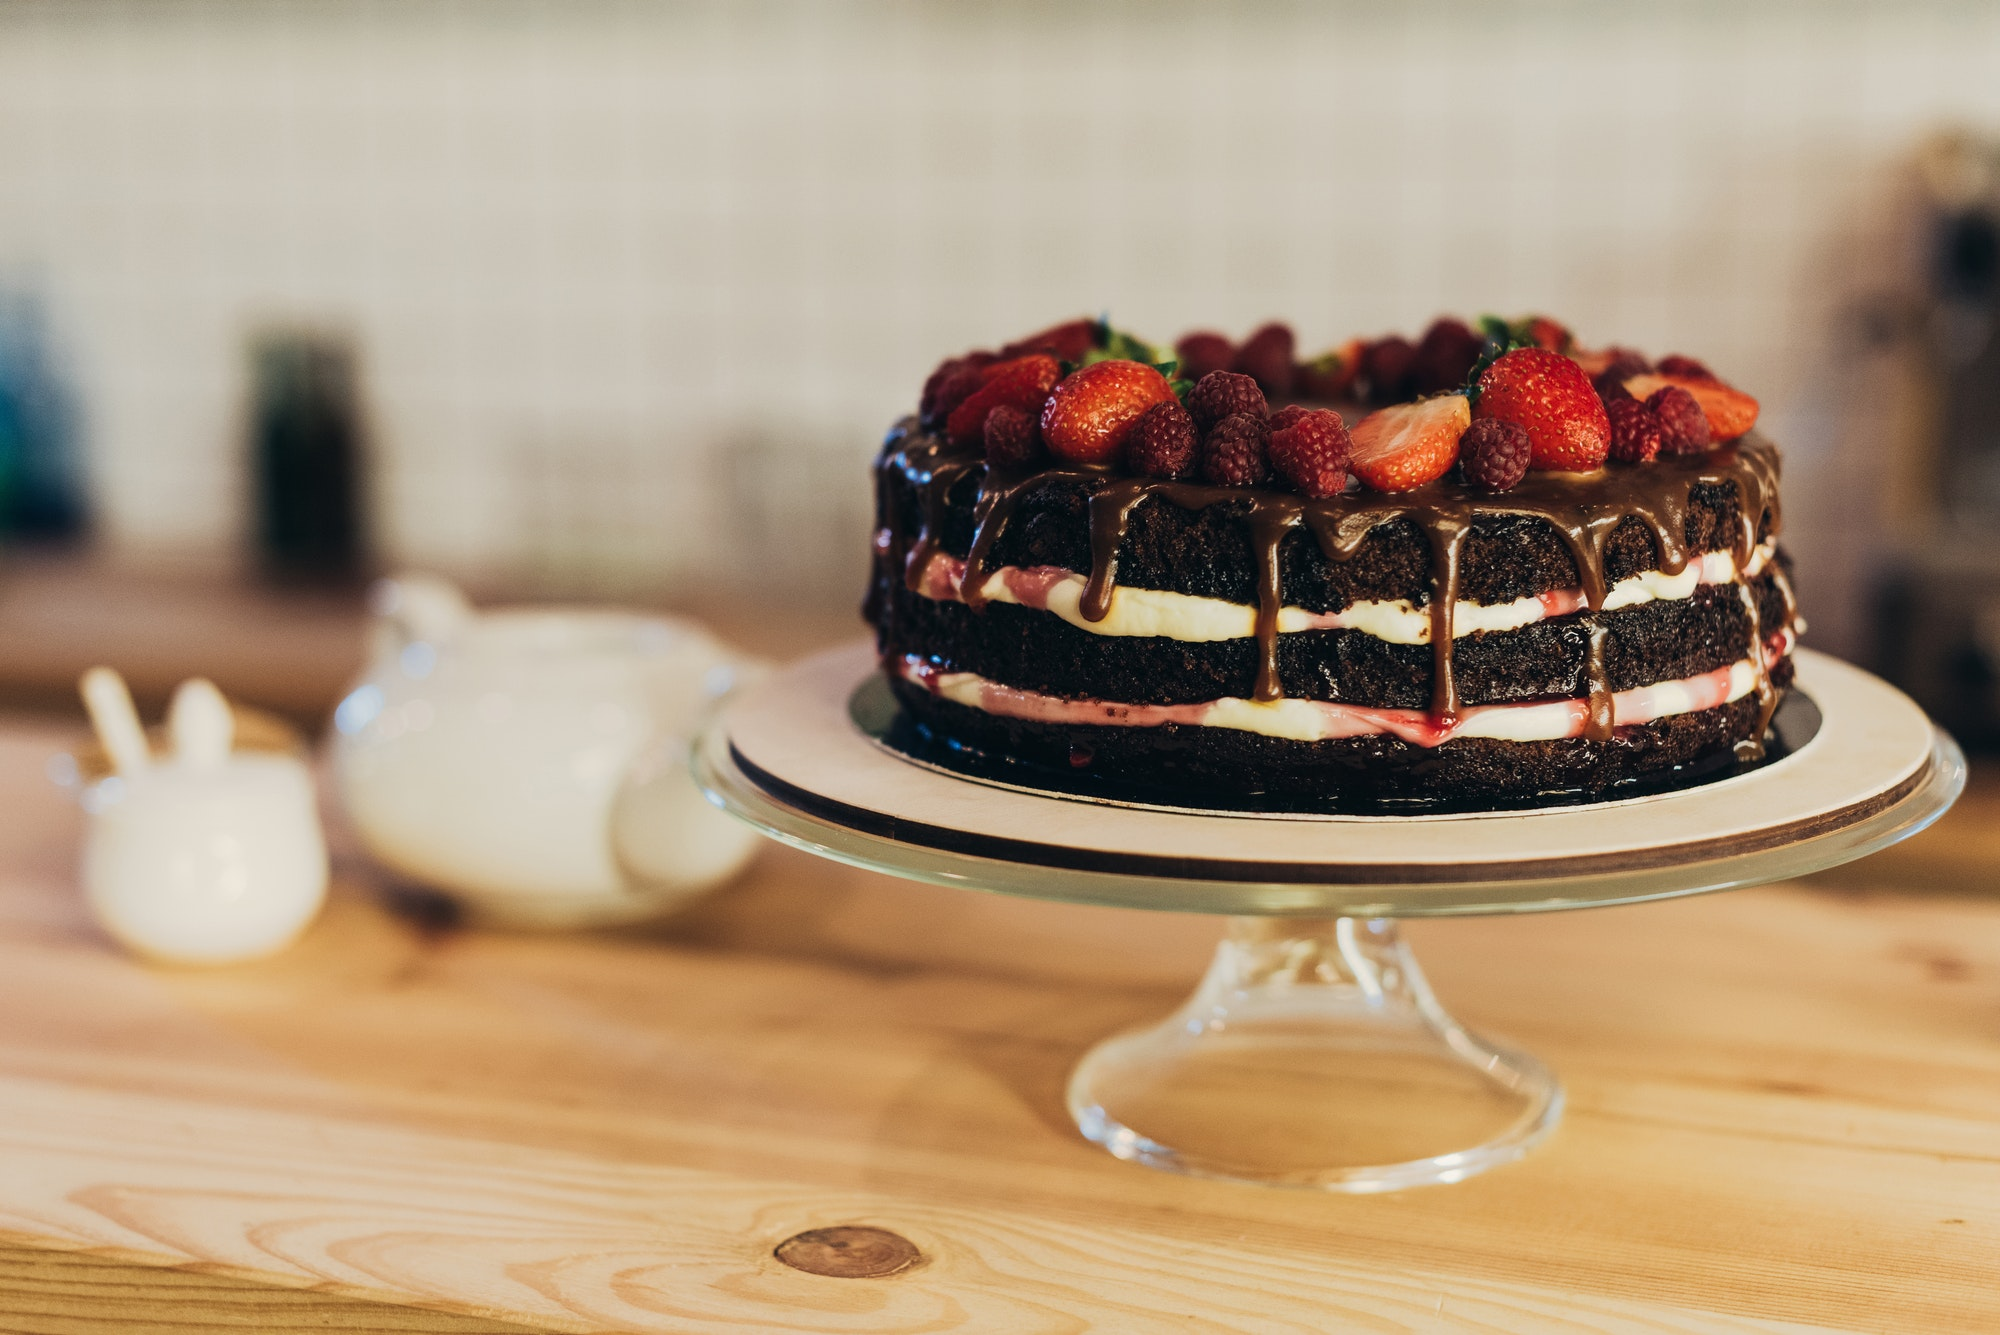 delicious chocolate cake with fruits on cake stand on a wooden table